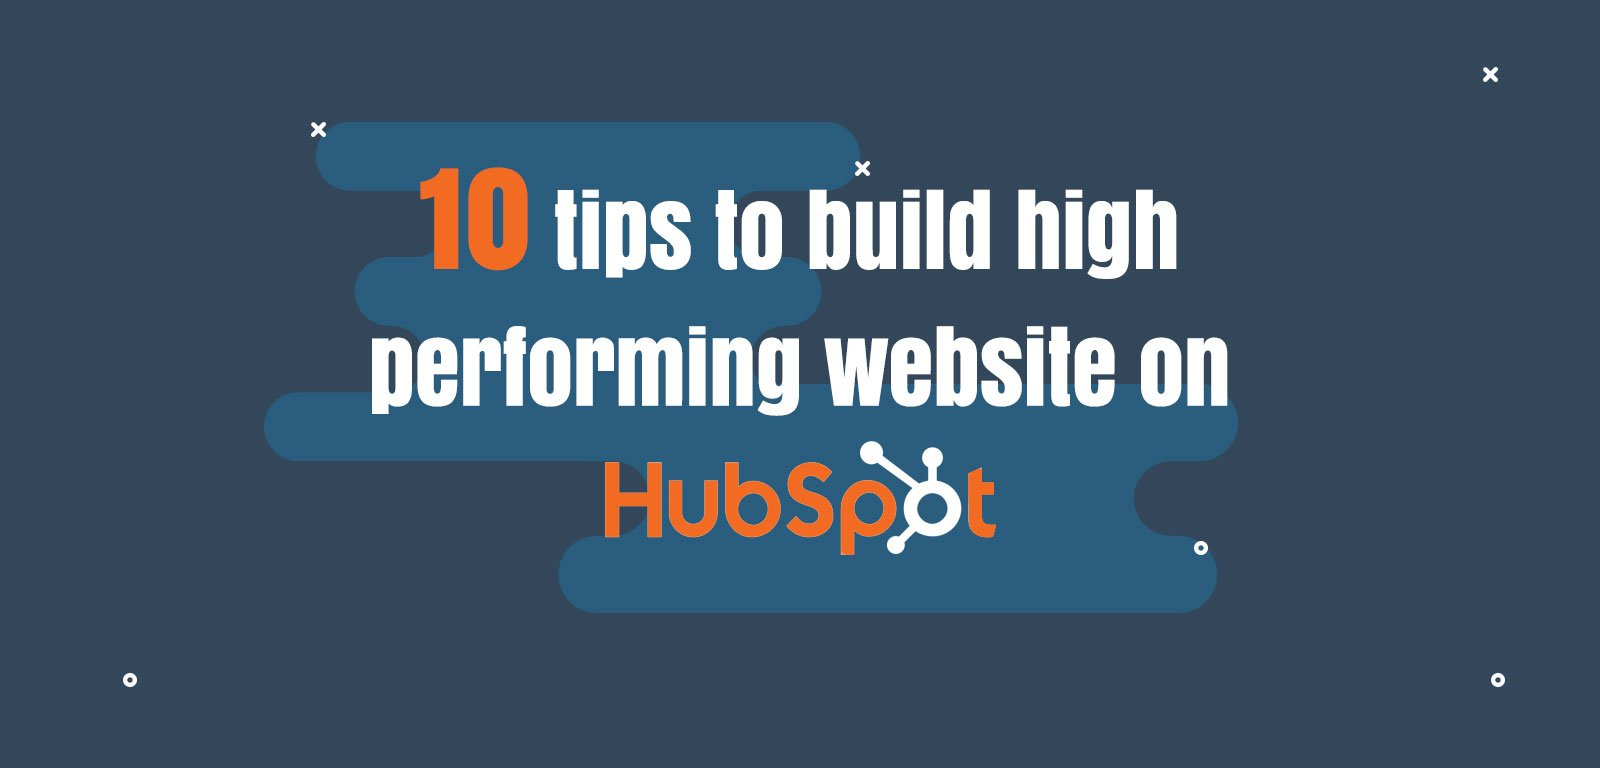 10 tips to build high performing website on Hubspot